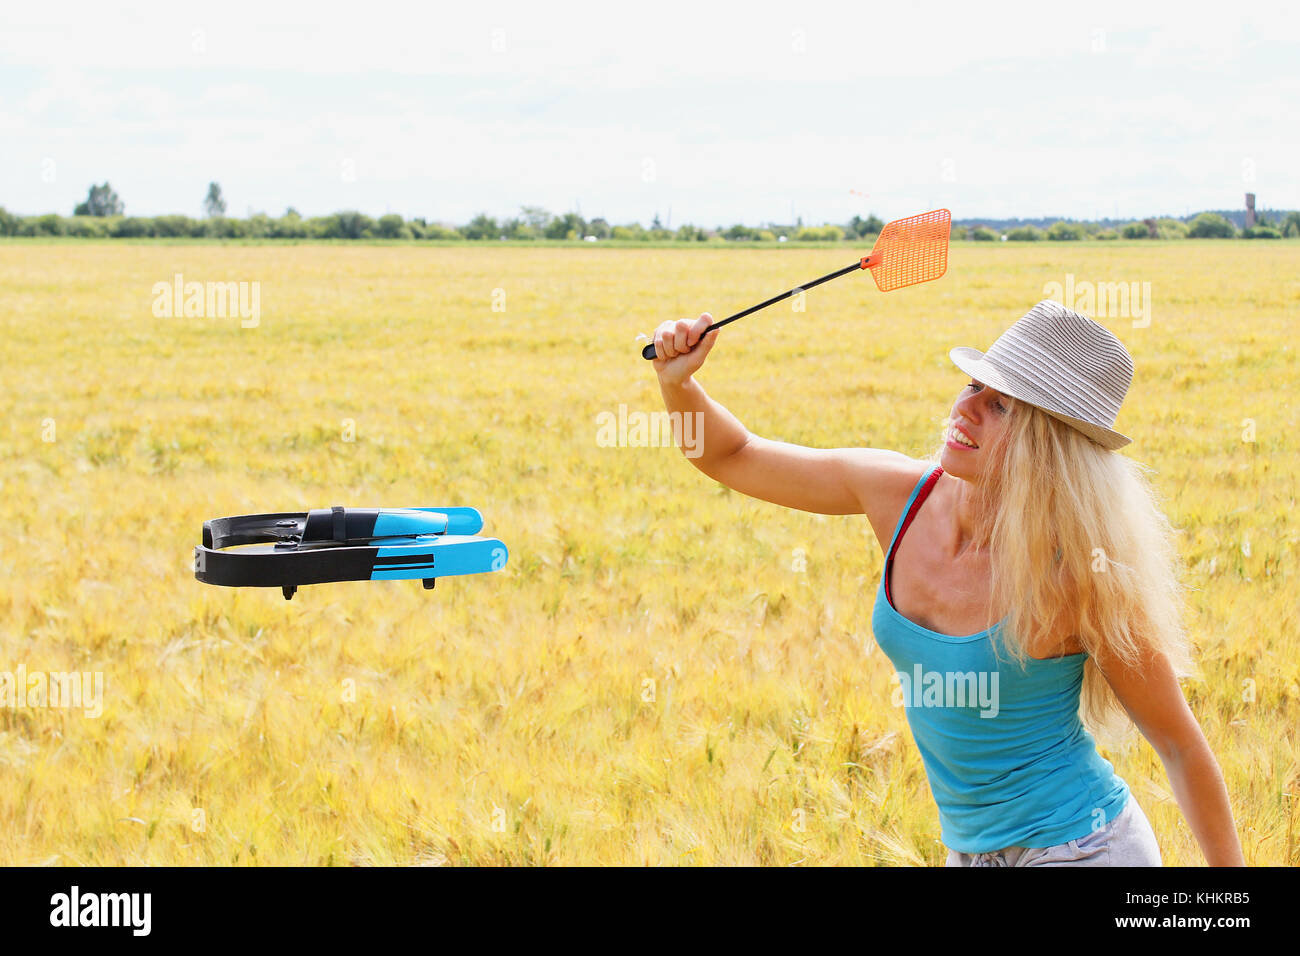 how to use a fly swatter